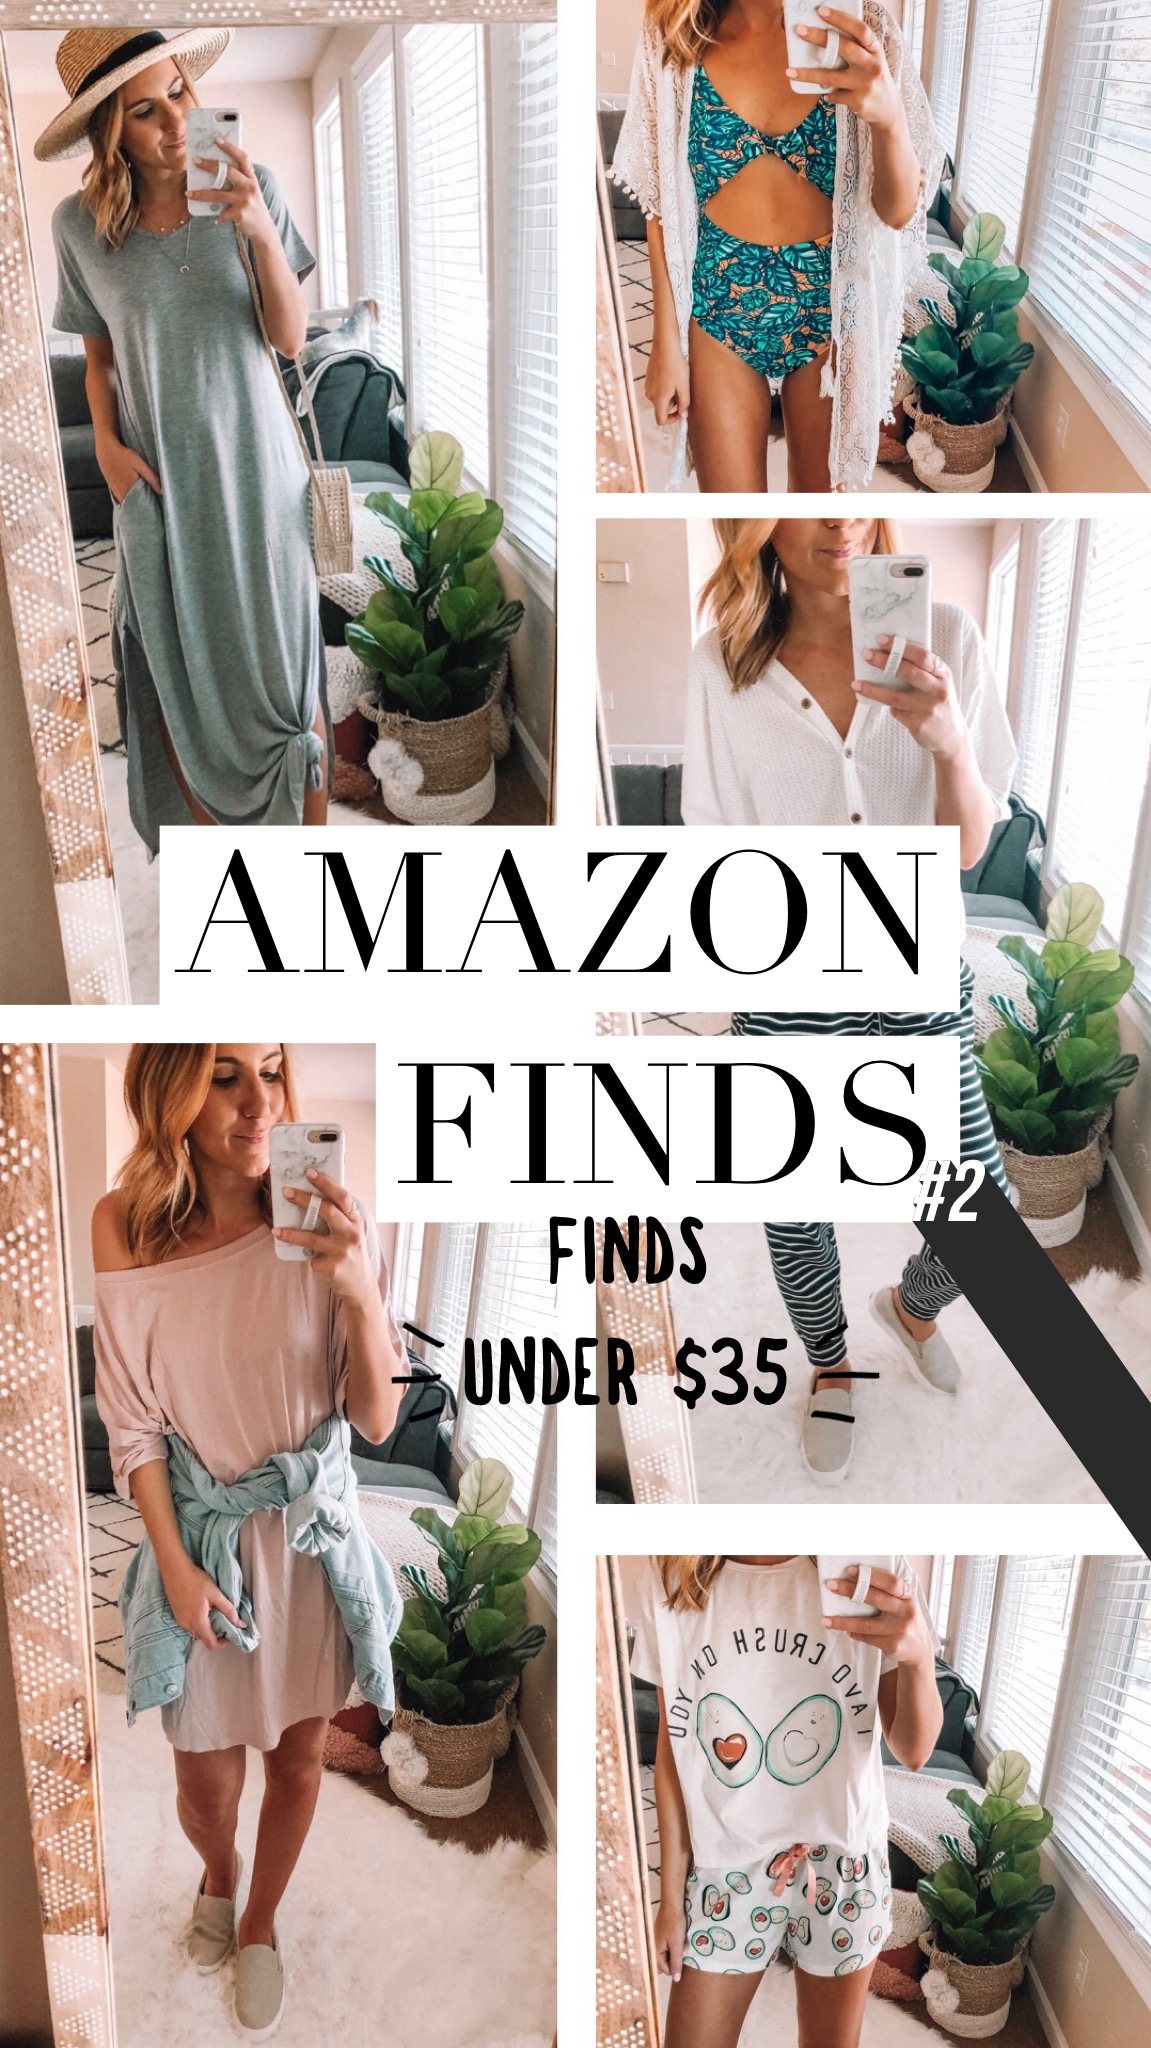 Amazon Finds #2 – Finds Under $35